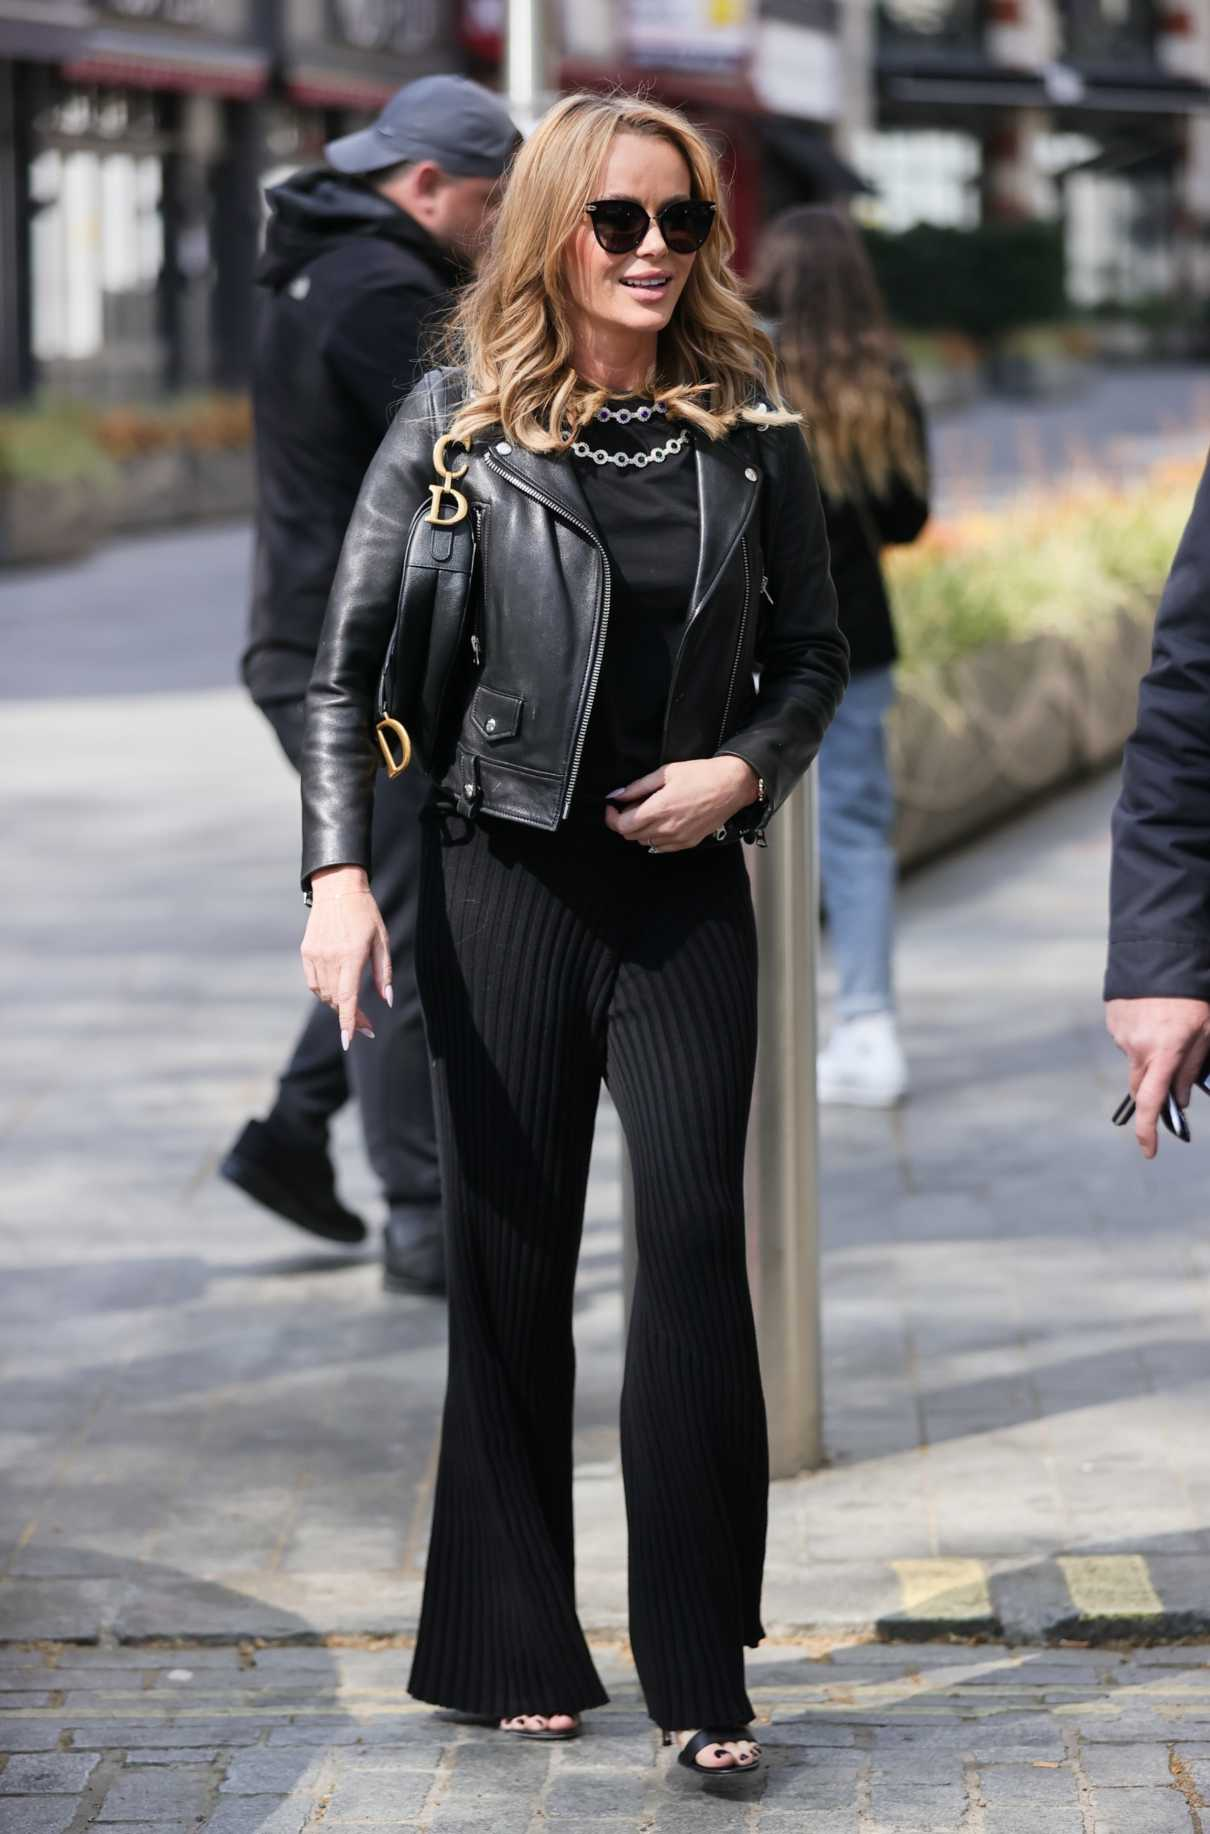 Amanda Holden in a Black Leather Jacket